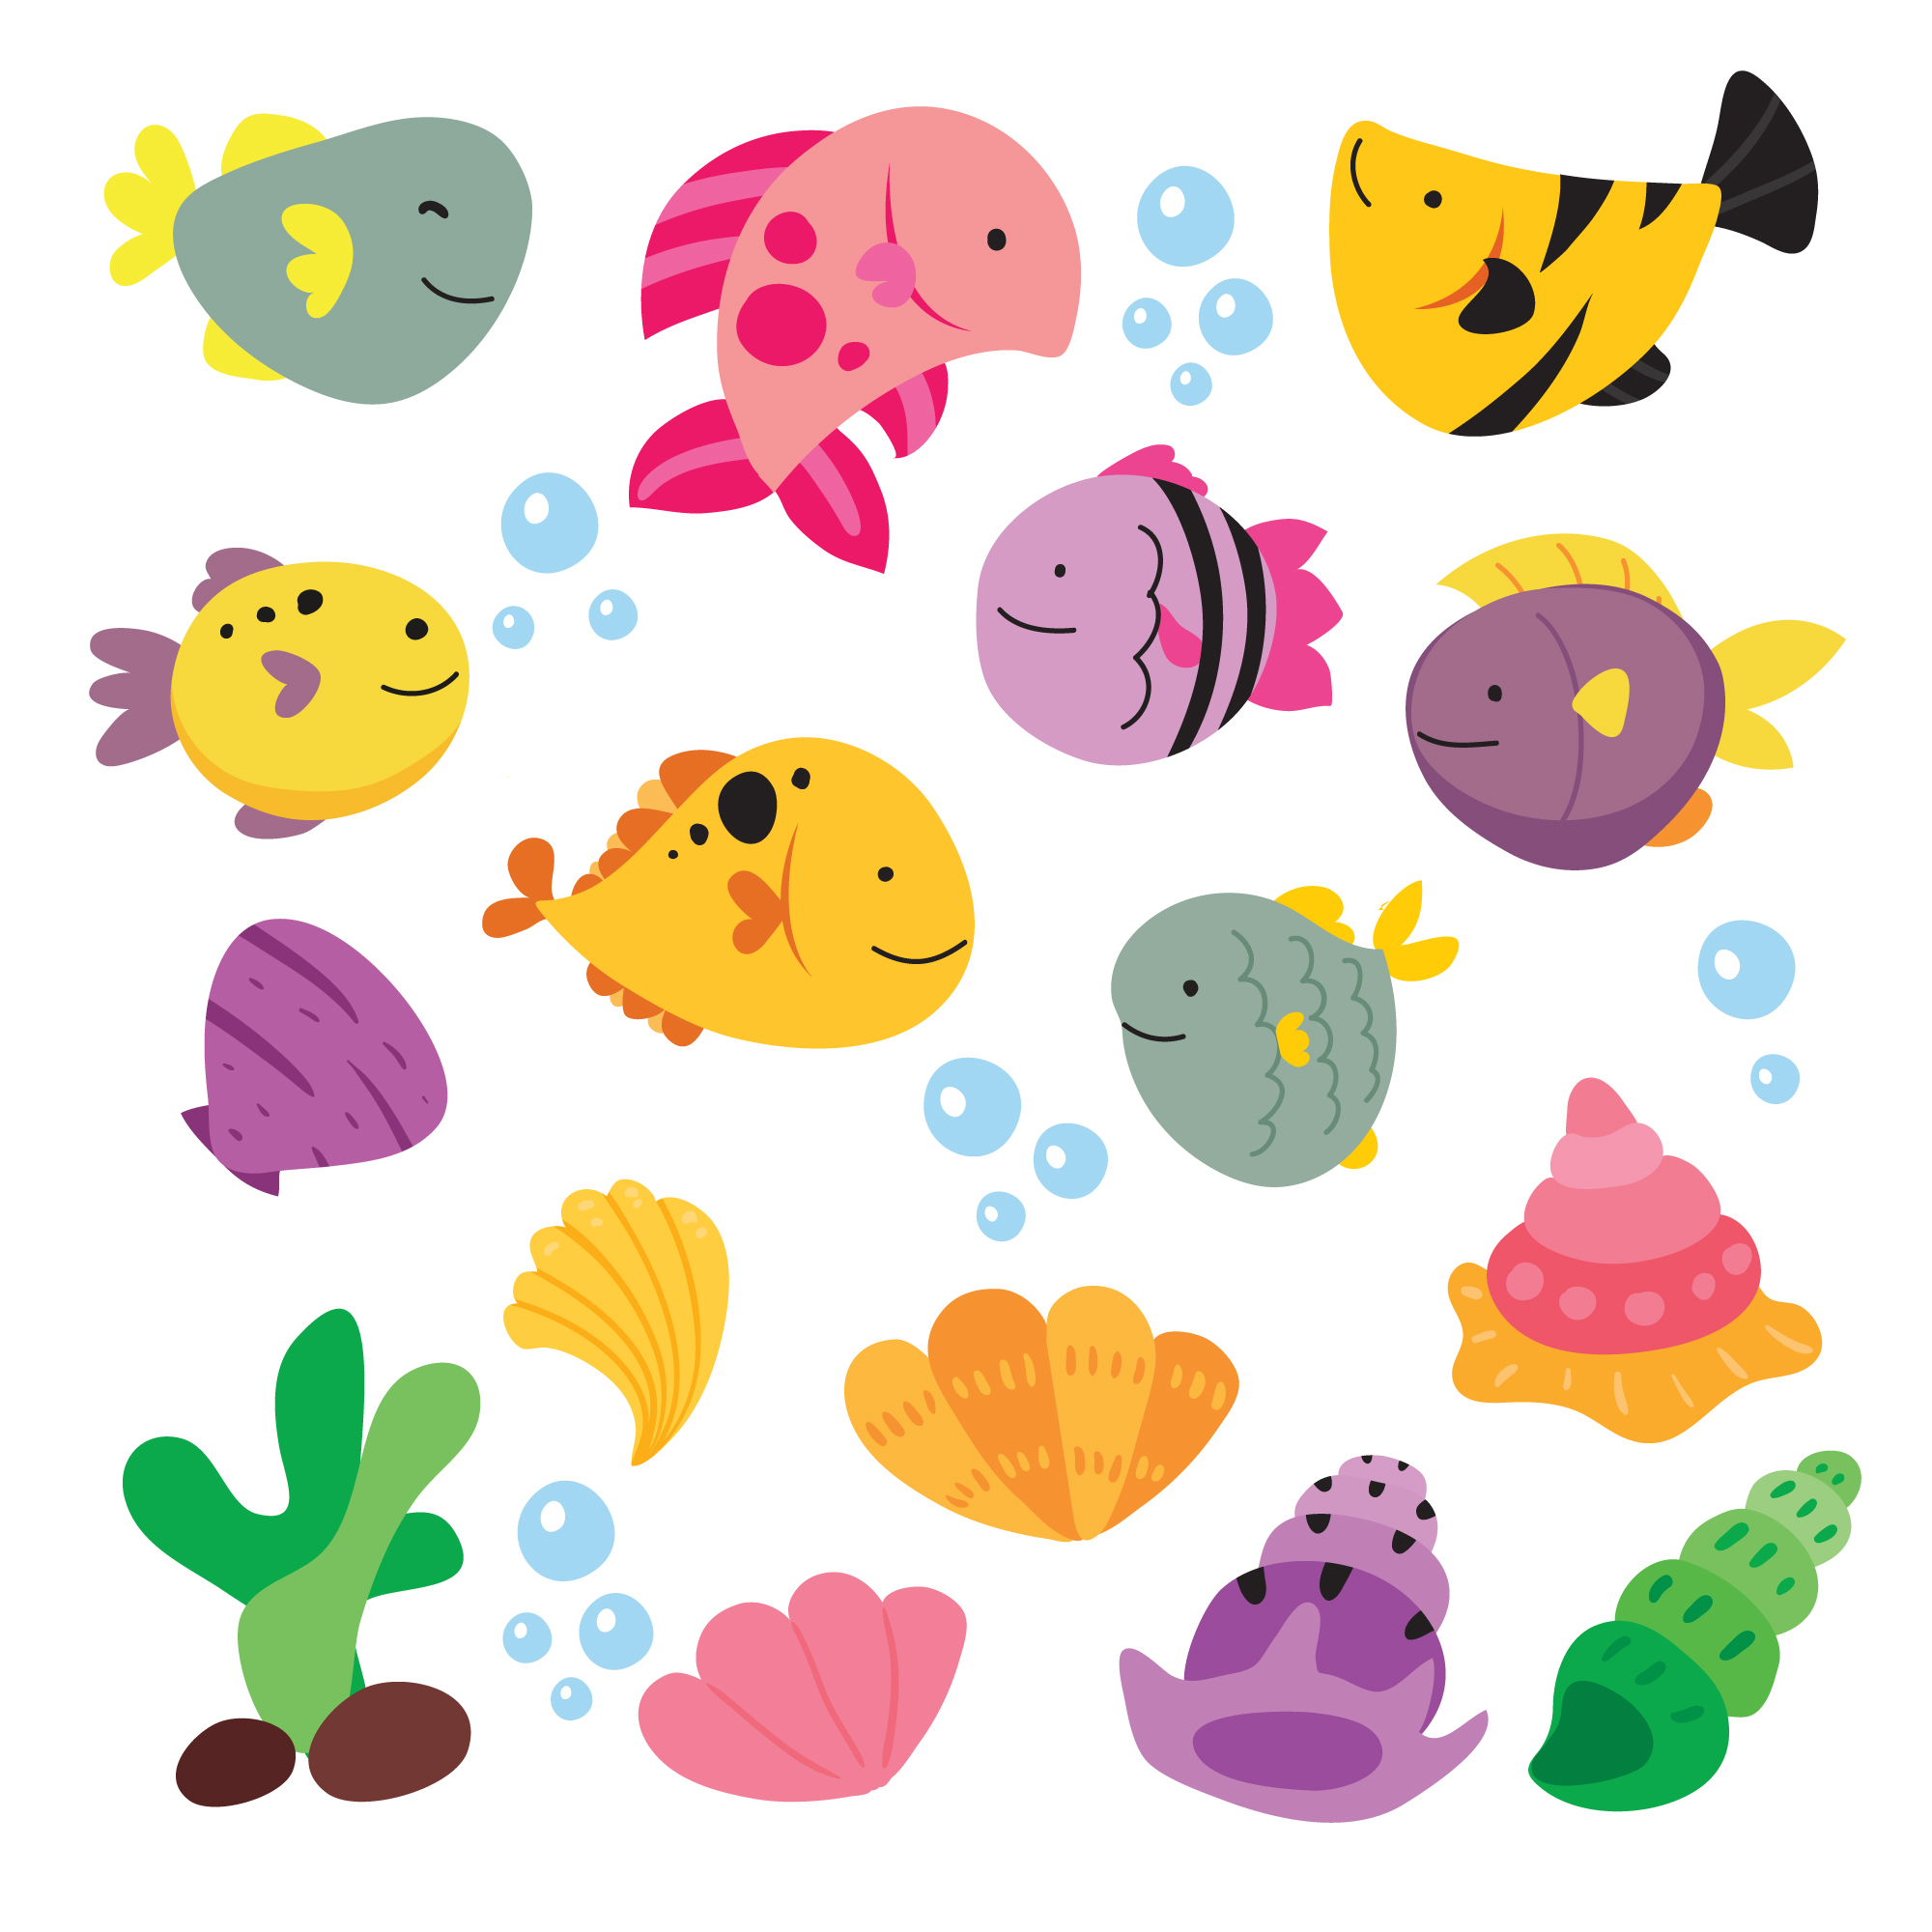 Fishes illustration collection